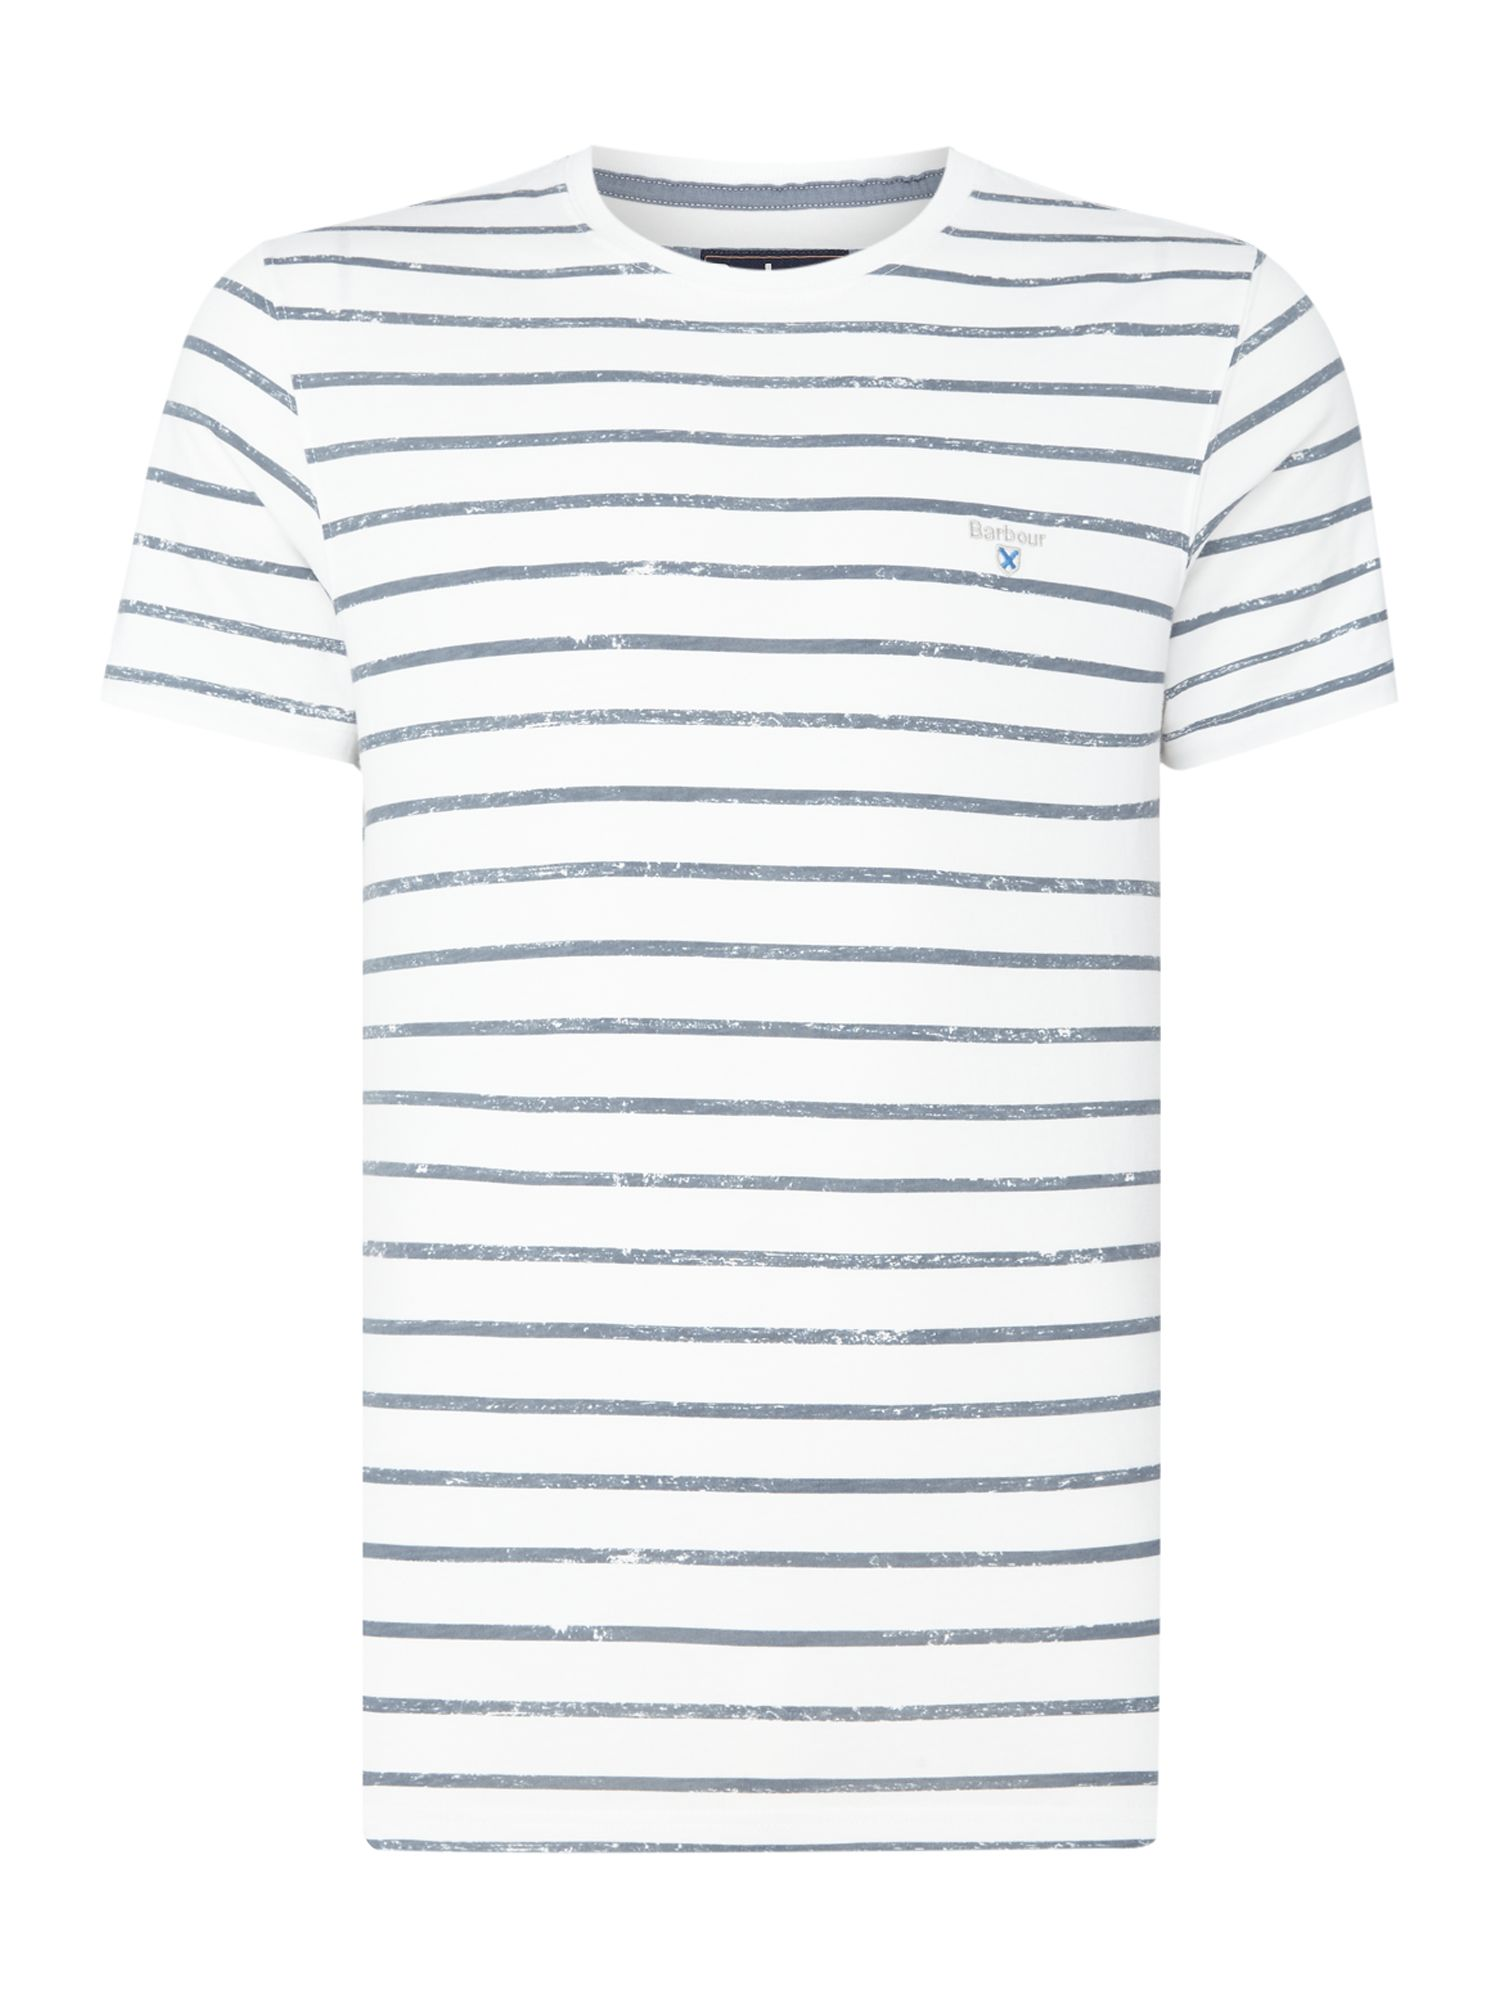 Men's Barbour Stripe print dalewood short sleeve t-shirt, White